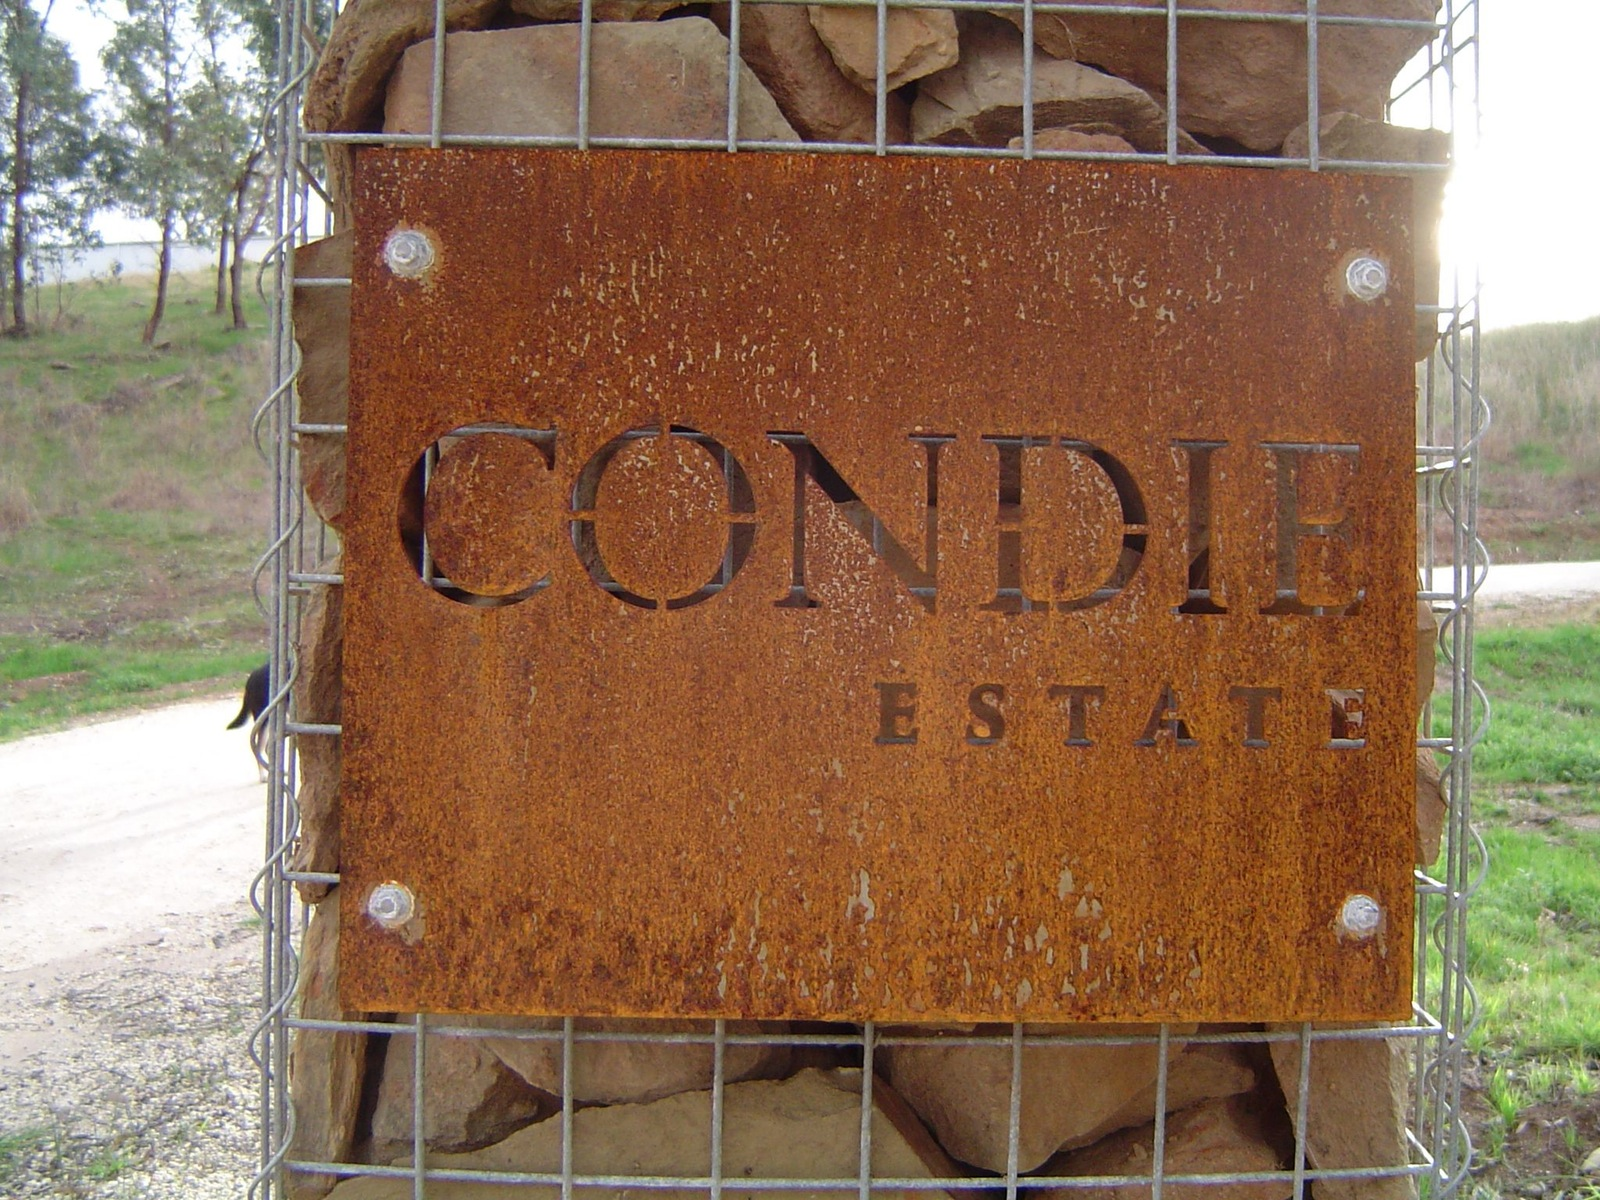 Condie Estate